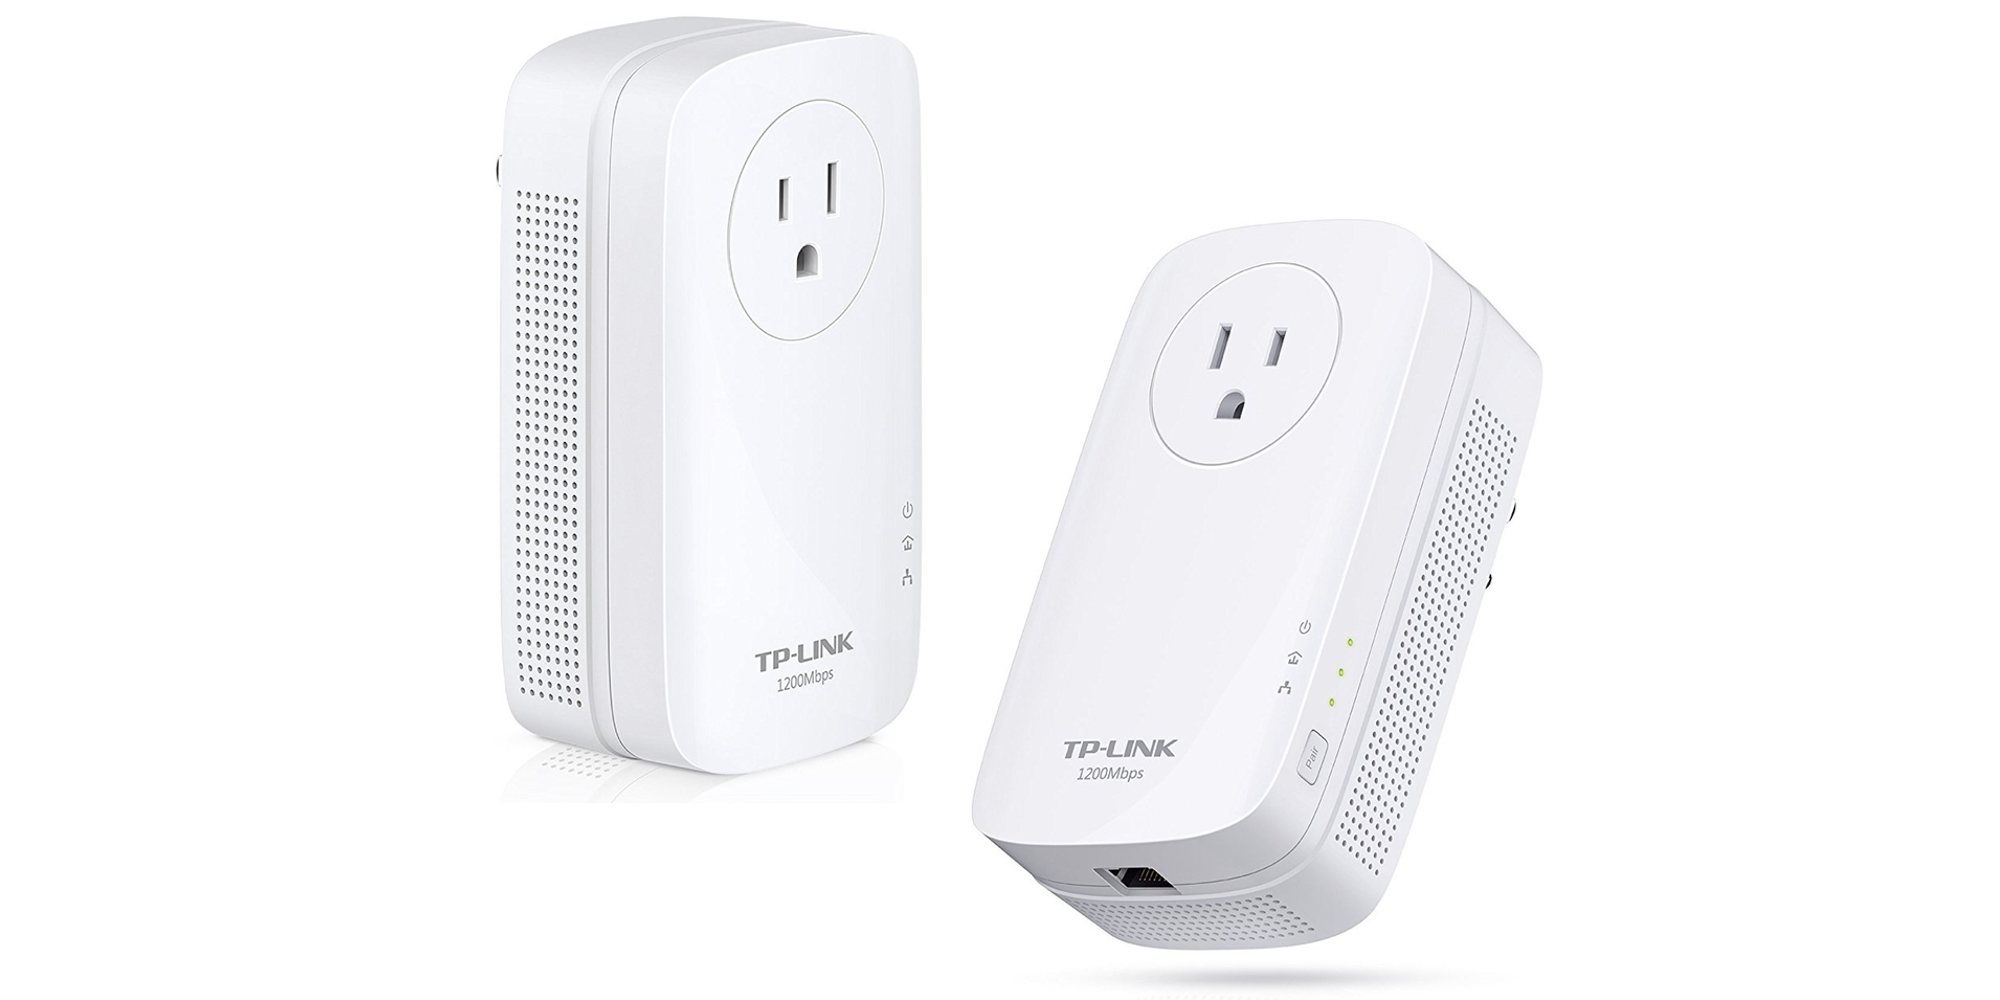 These Tp Link Powerline Adapters Add Ethernet Ports Anywhere In Your Home For 50 9to5toys